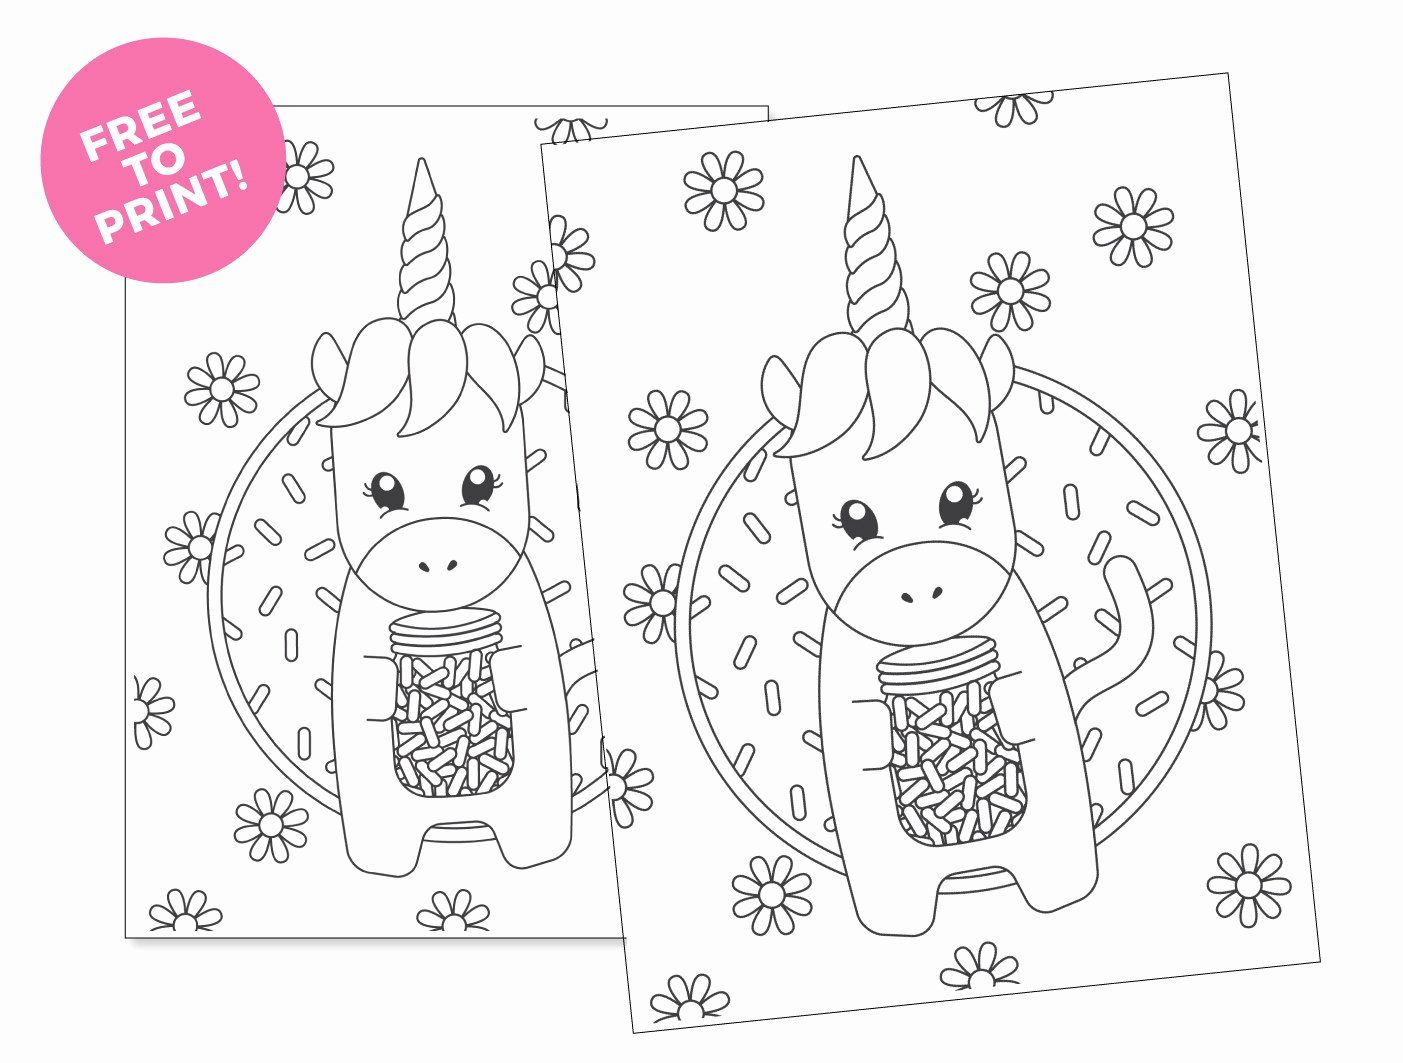 Spring Flowers Coloring Pages Printable in 2020 | Unicorn ...